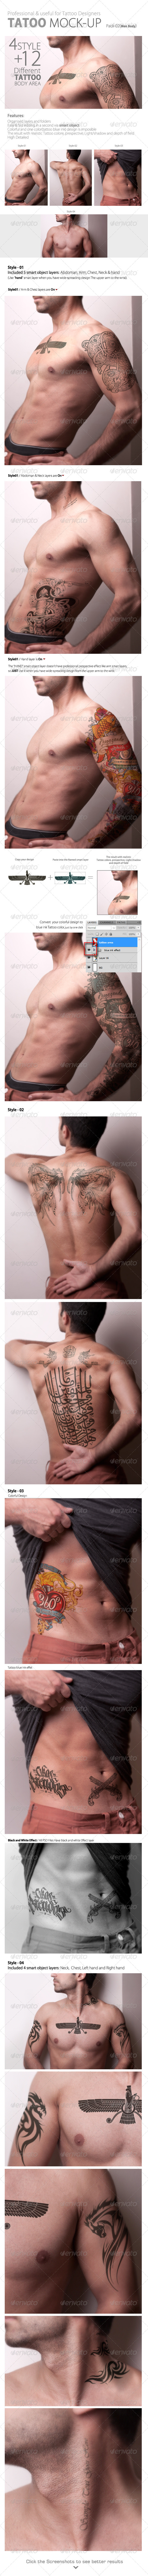 GraphicRiver Tattoo Mock up Pack02 Men Body 6041227